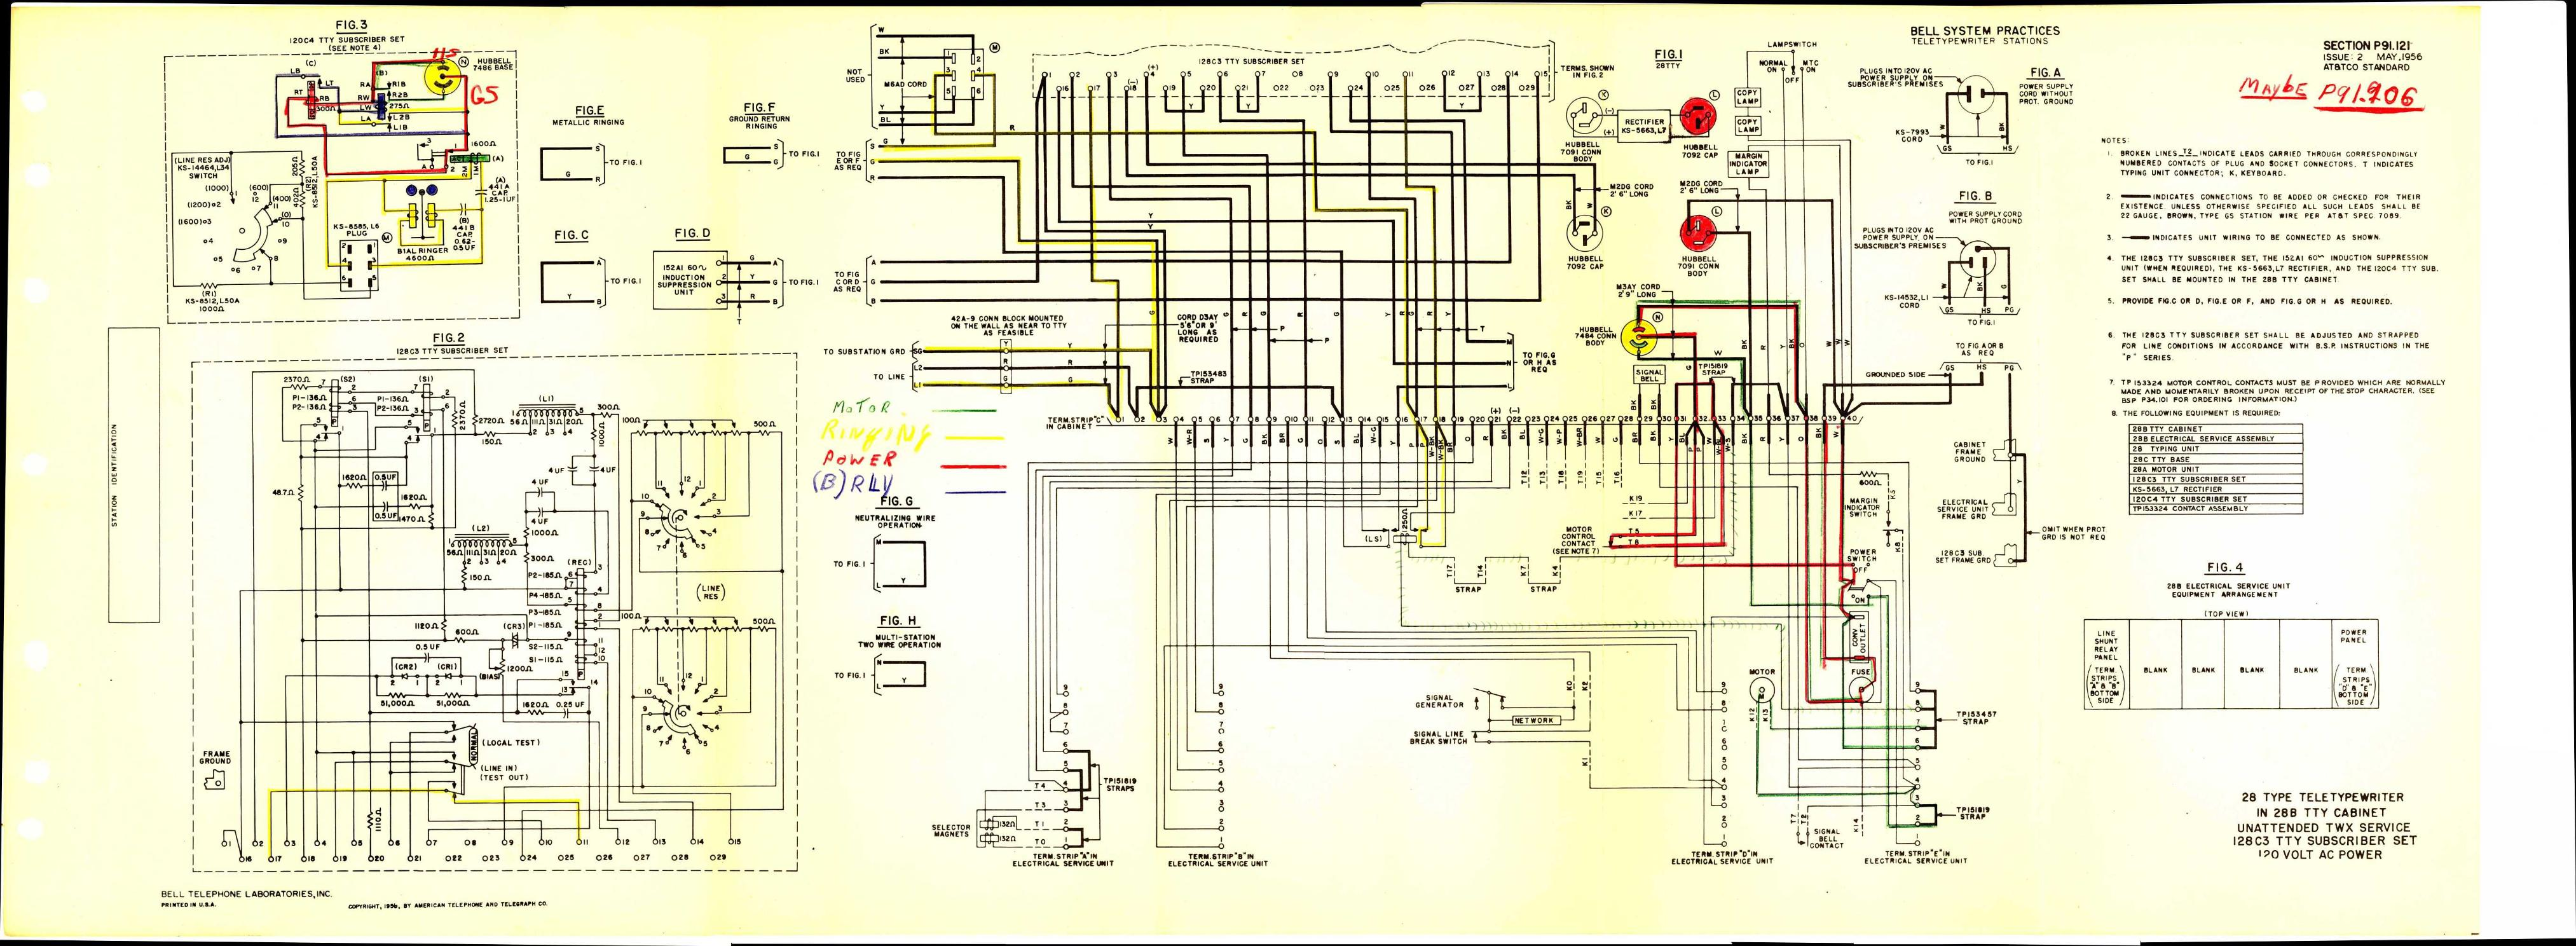 Teletype Wiring Diagrams And Schematics Multiple Start Stop Station Diagram P91121 Link